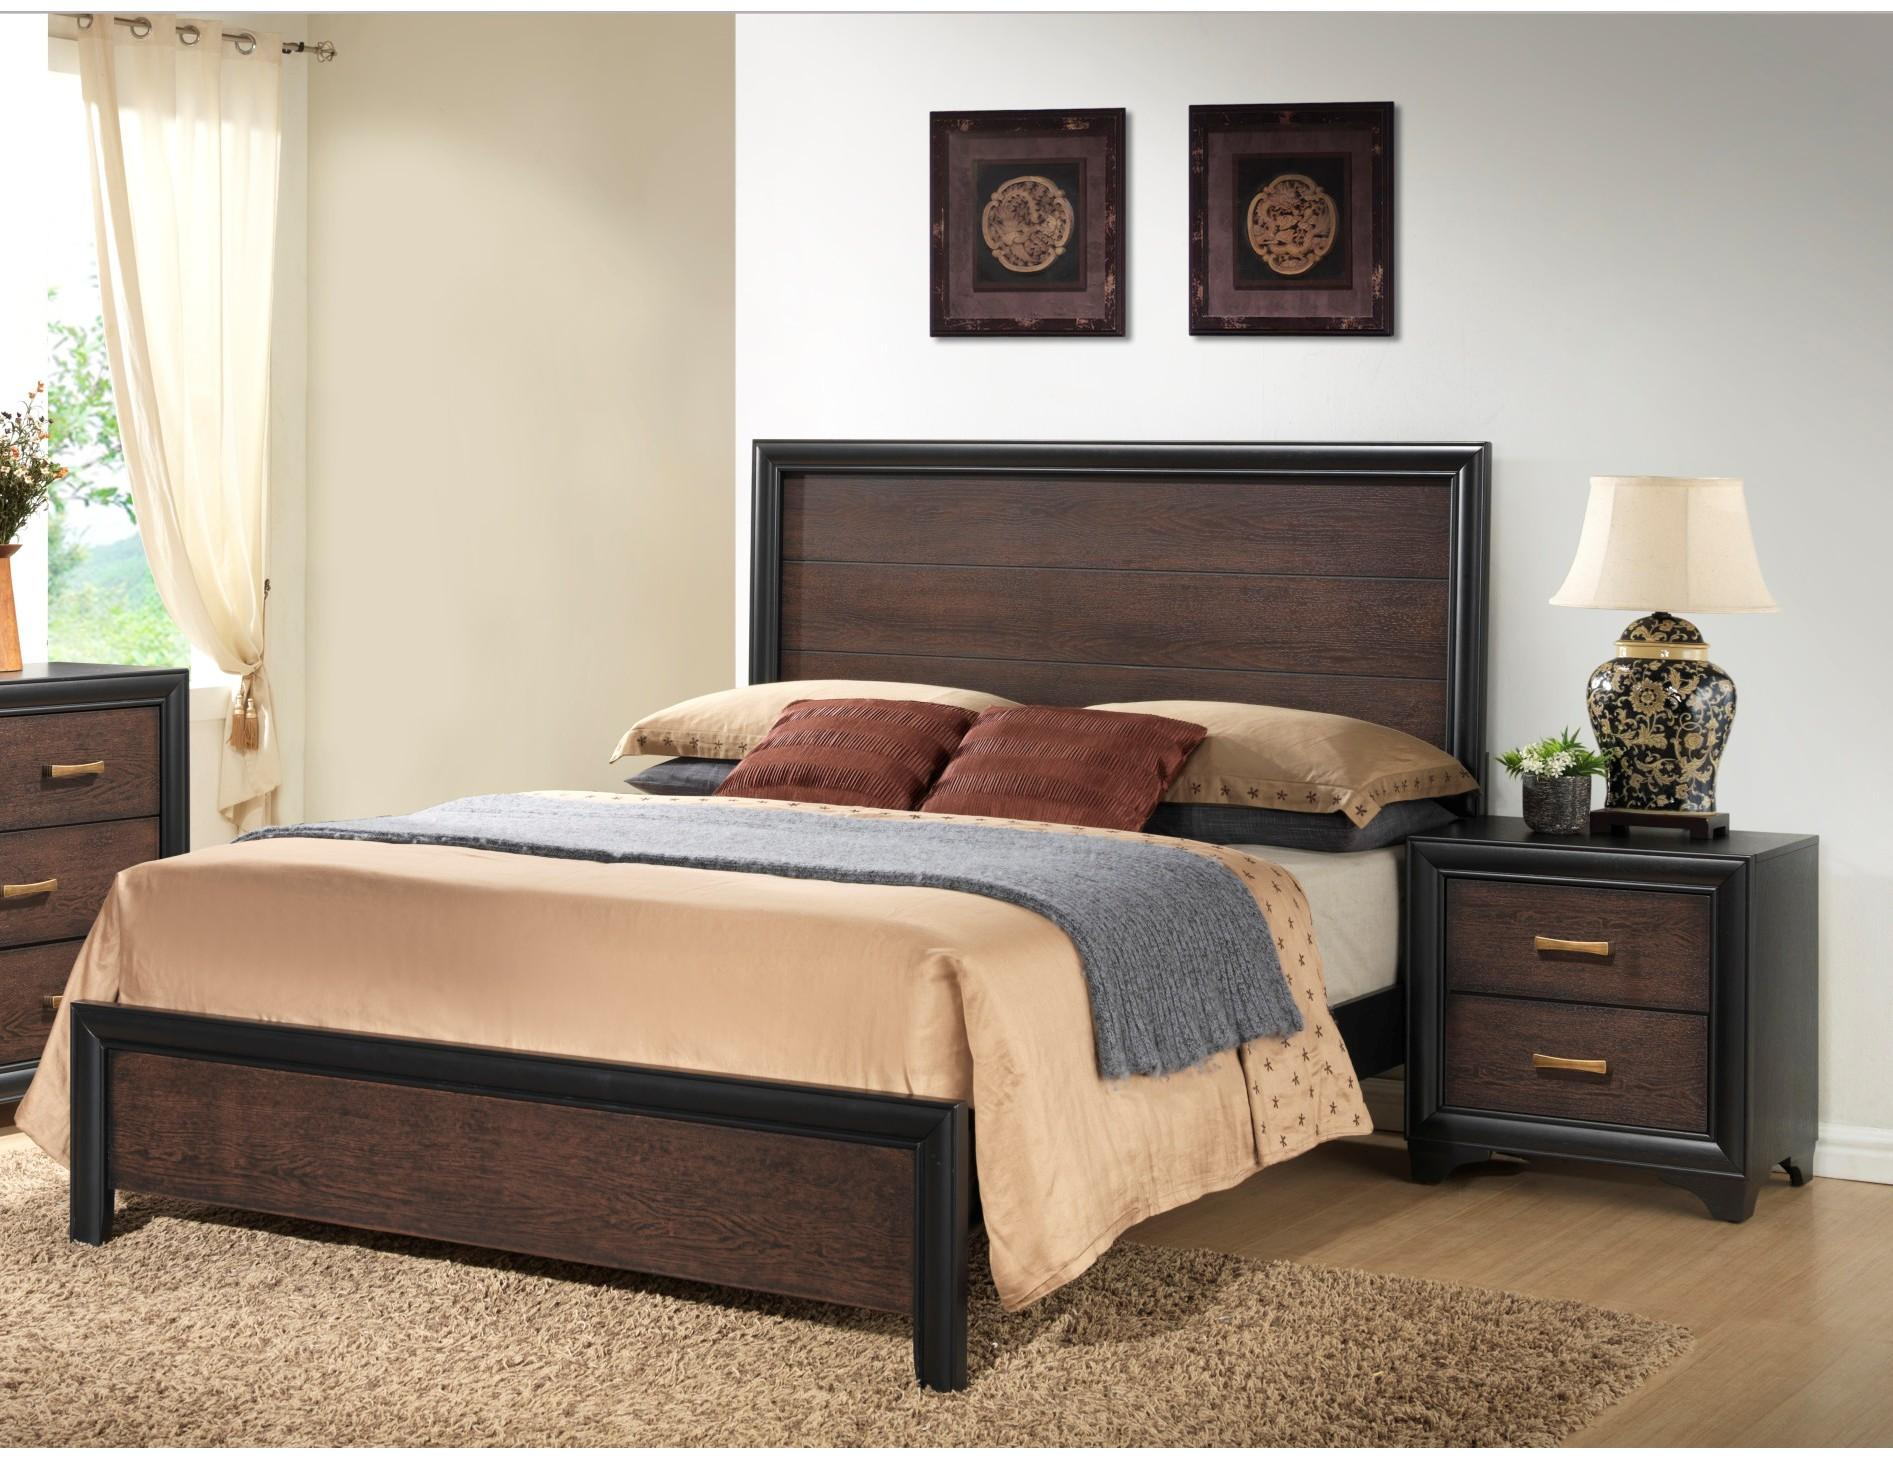 Emerald Home Prelude Black Brown Wood 2pc Bedroom Set with Queen Bed